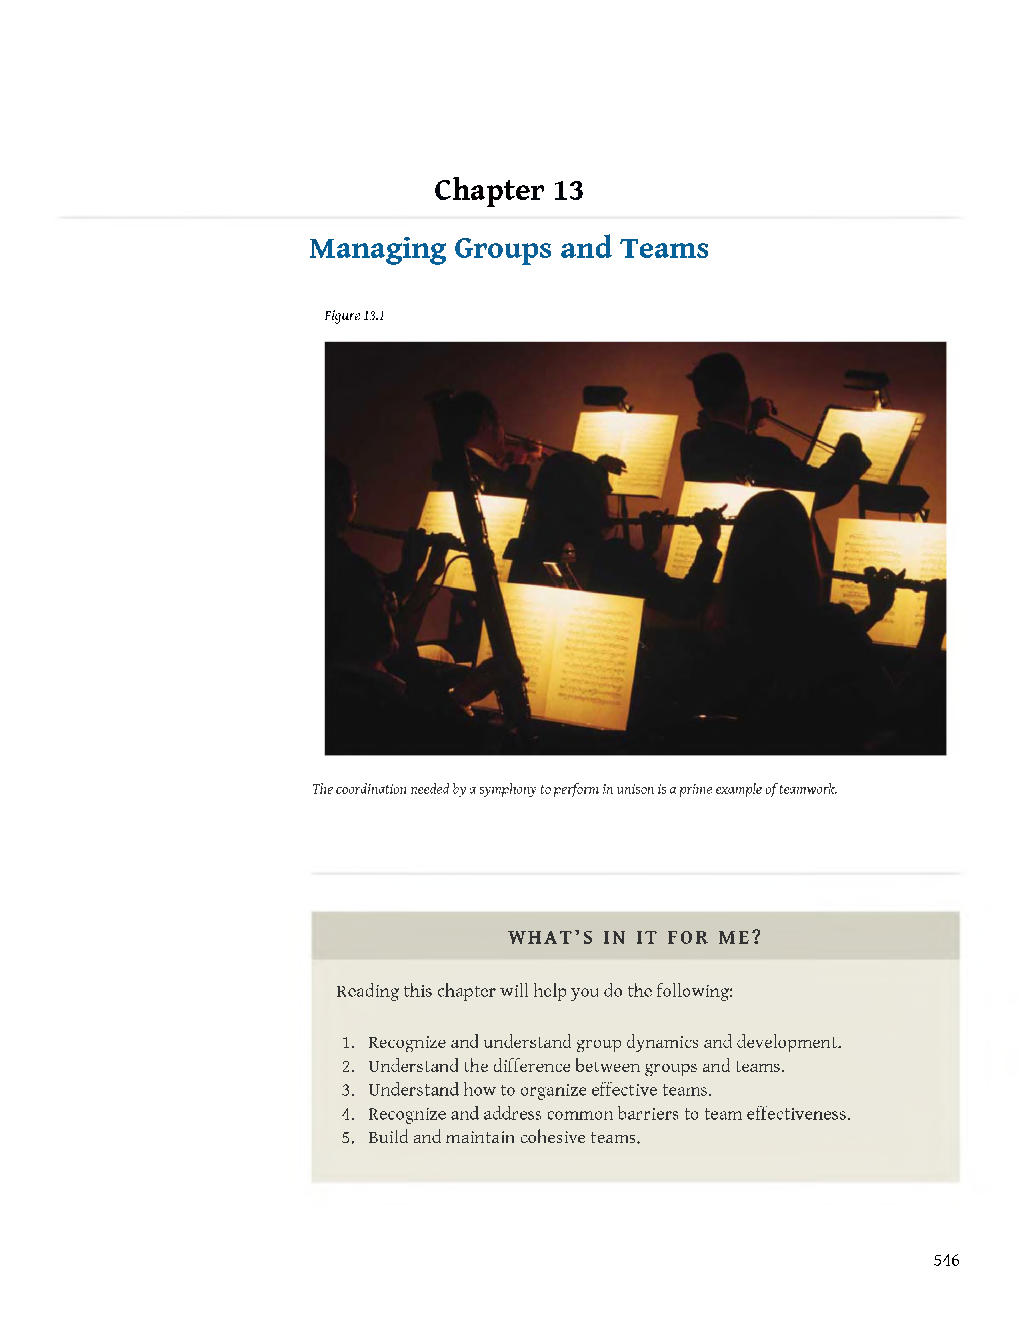 UGC NET Managing Groups And Teams Study Material For Management - Page 2